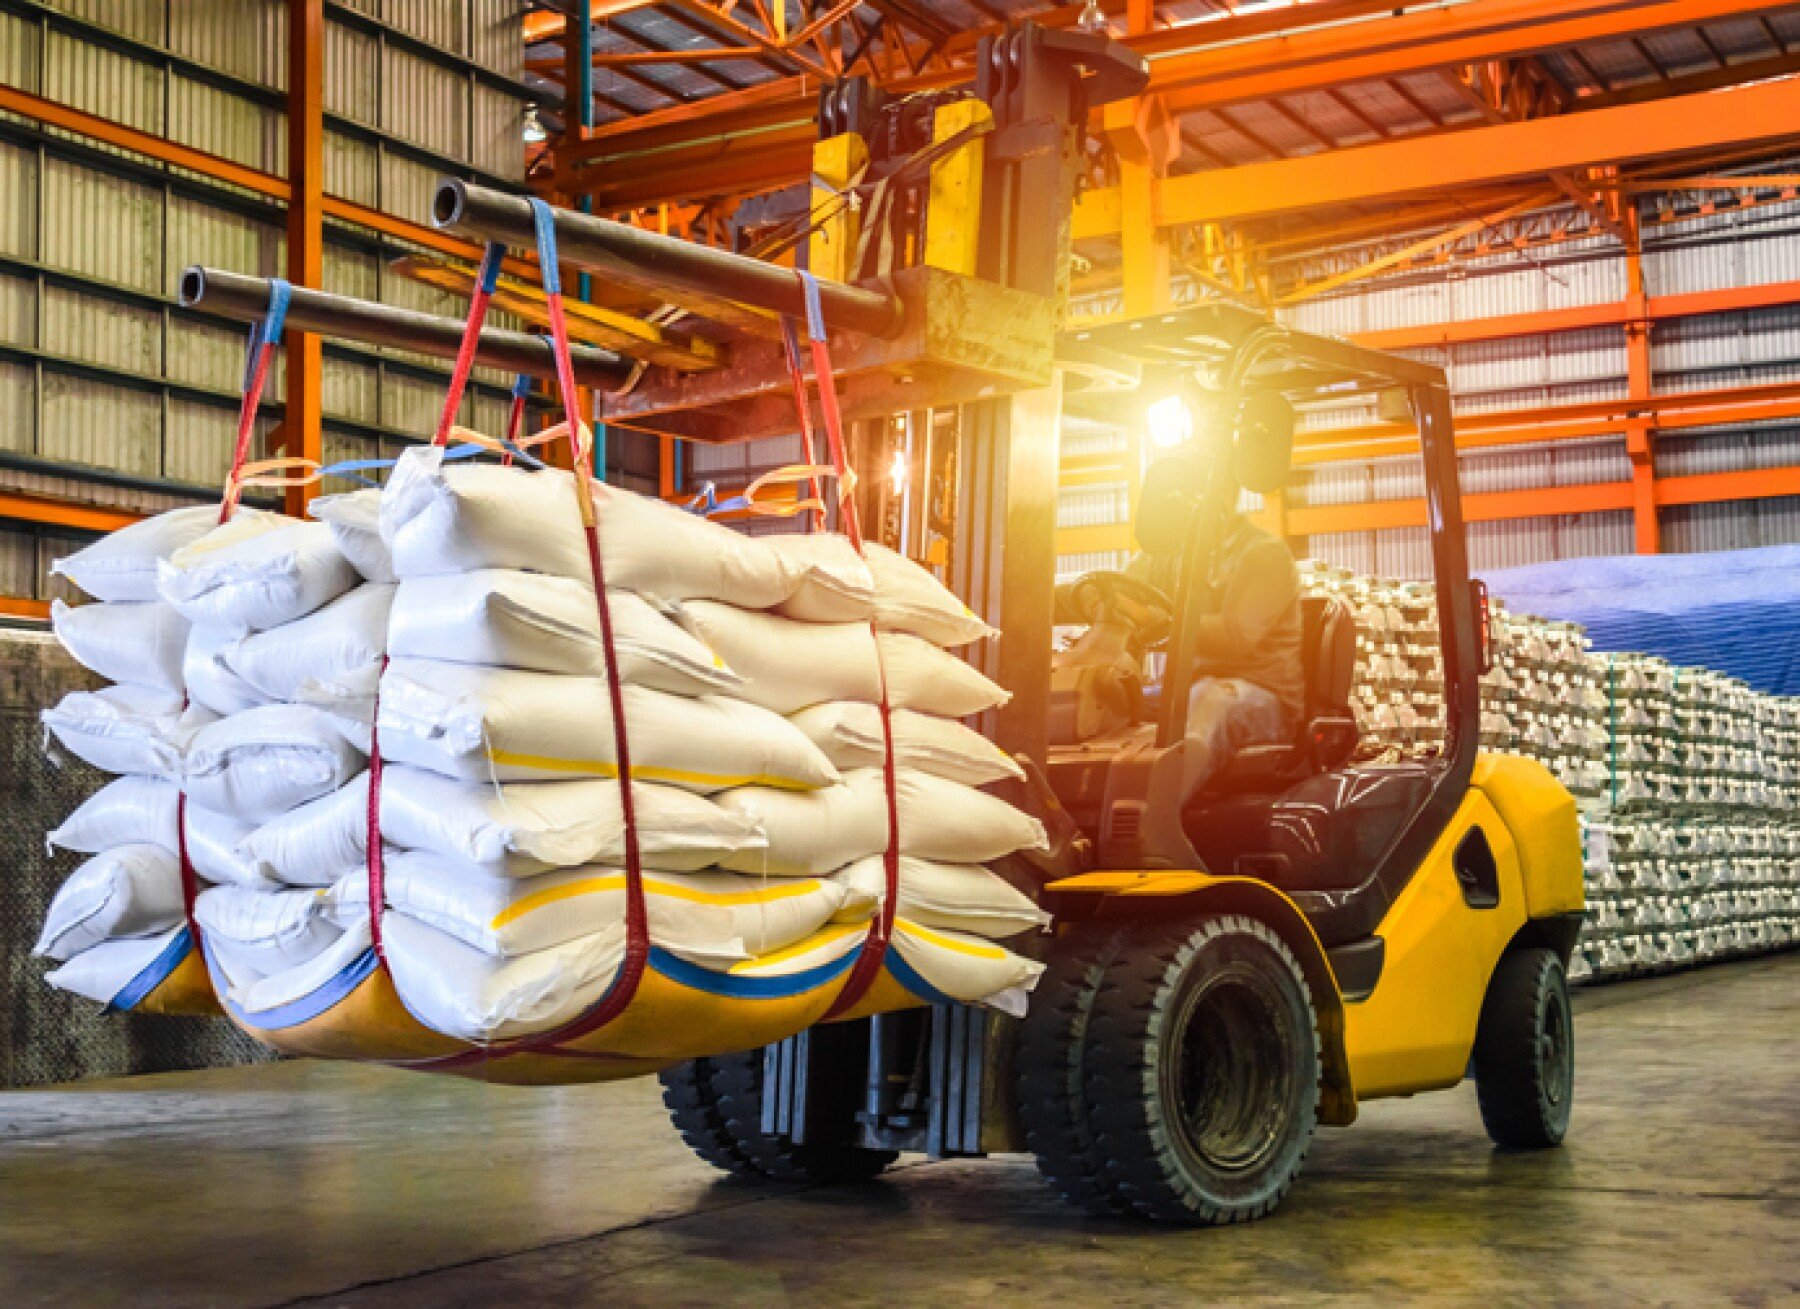 Forklift handling sugar bags for stuffing into container for export.